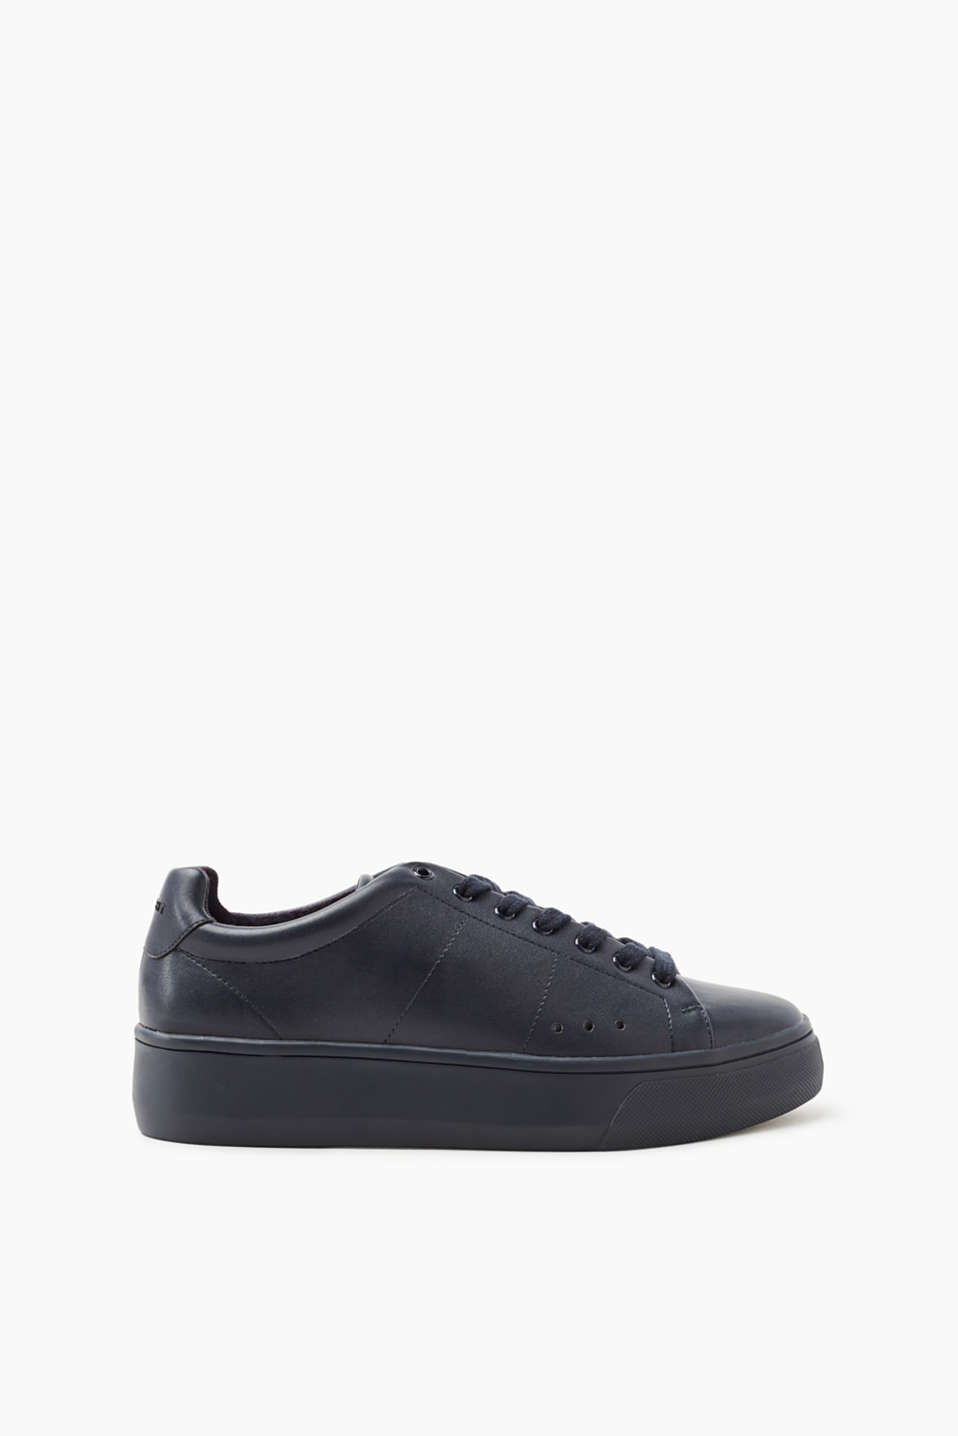 Esprit - Trend trainers with a flat sole